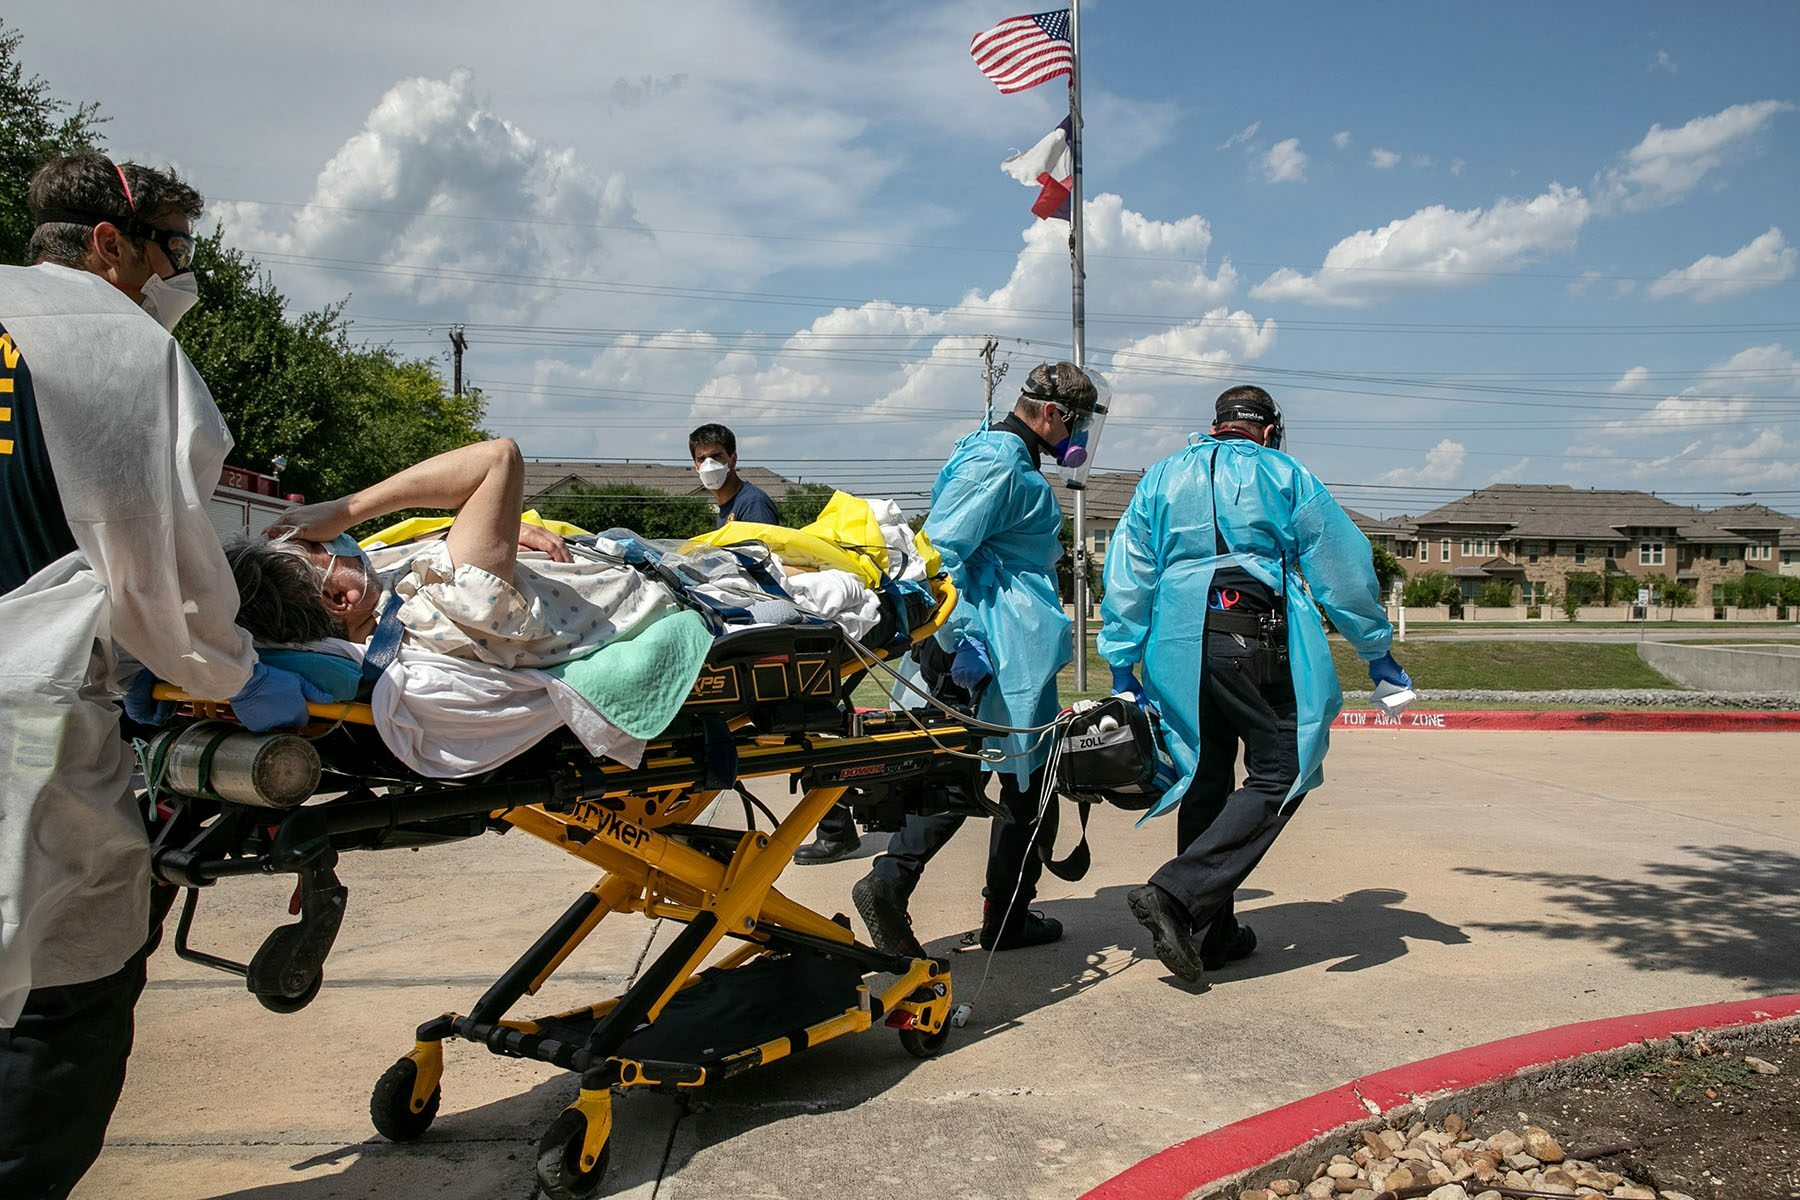 First responders wearing PPE transport a man on a stretcher while he covers his face.